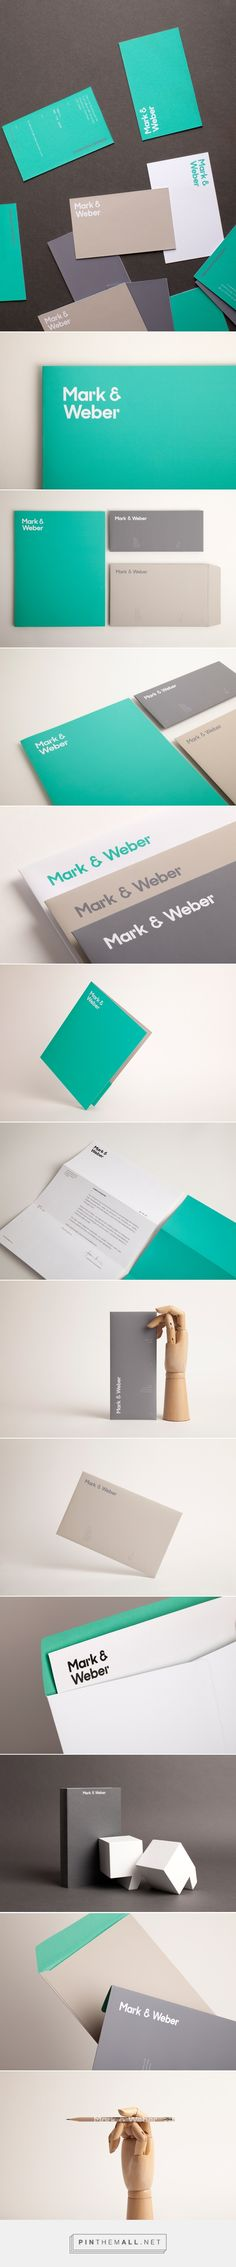 Mark & Weber on Behance - created via http://pinthemall.net